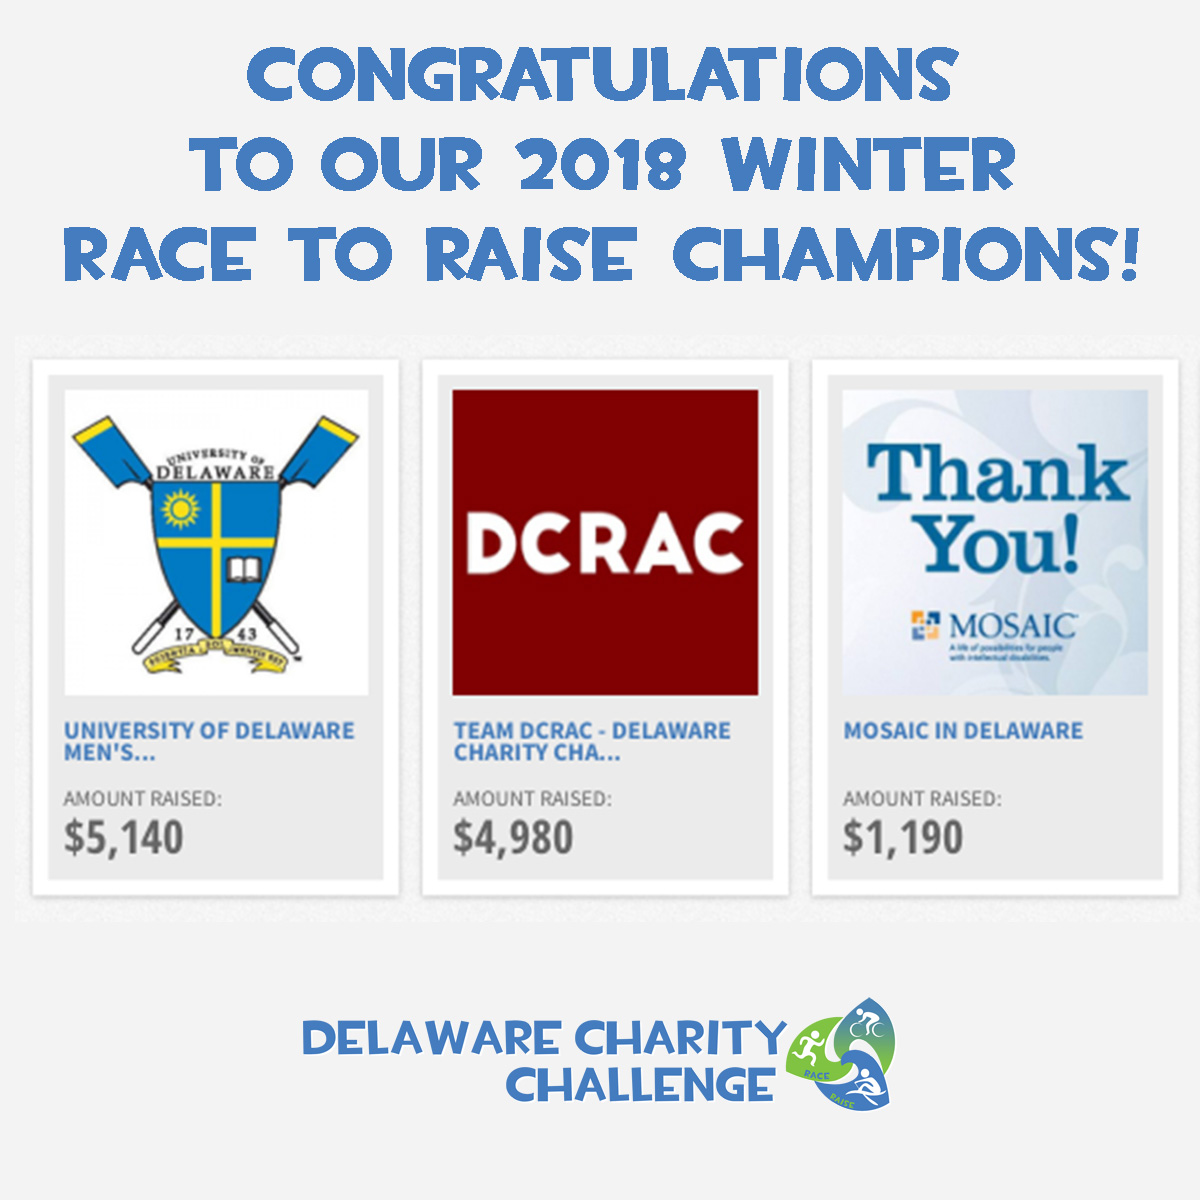 Congrats to our top 3 teams in this winter's Race to Raise fundraising contest! Including this past Winter's Race to Raise, teams in the Delaware Charity Challenge have collectively raised more than $150,000 since the original Spring 2015 competition.